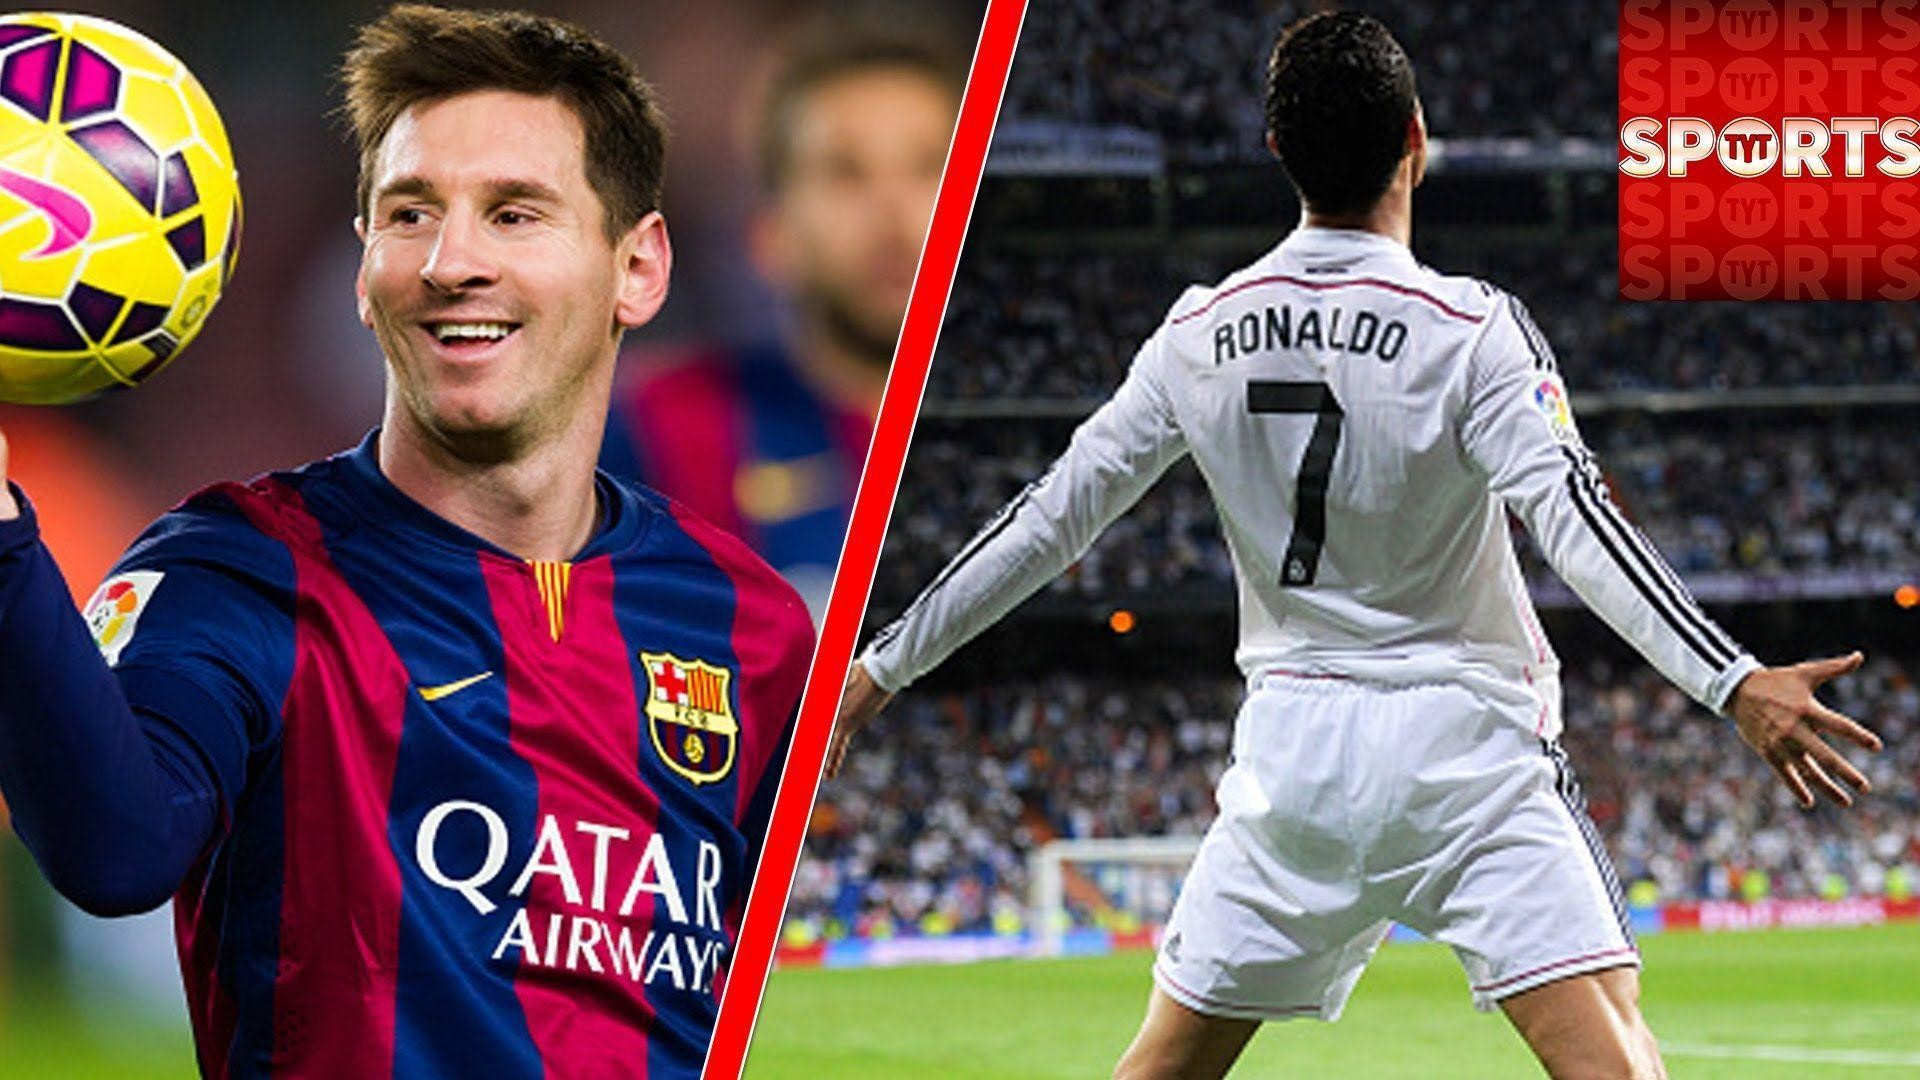 1920x1080 Messi Vs Ronaldo Wallpapers 2016 HD - Wallpaper Cave